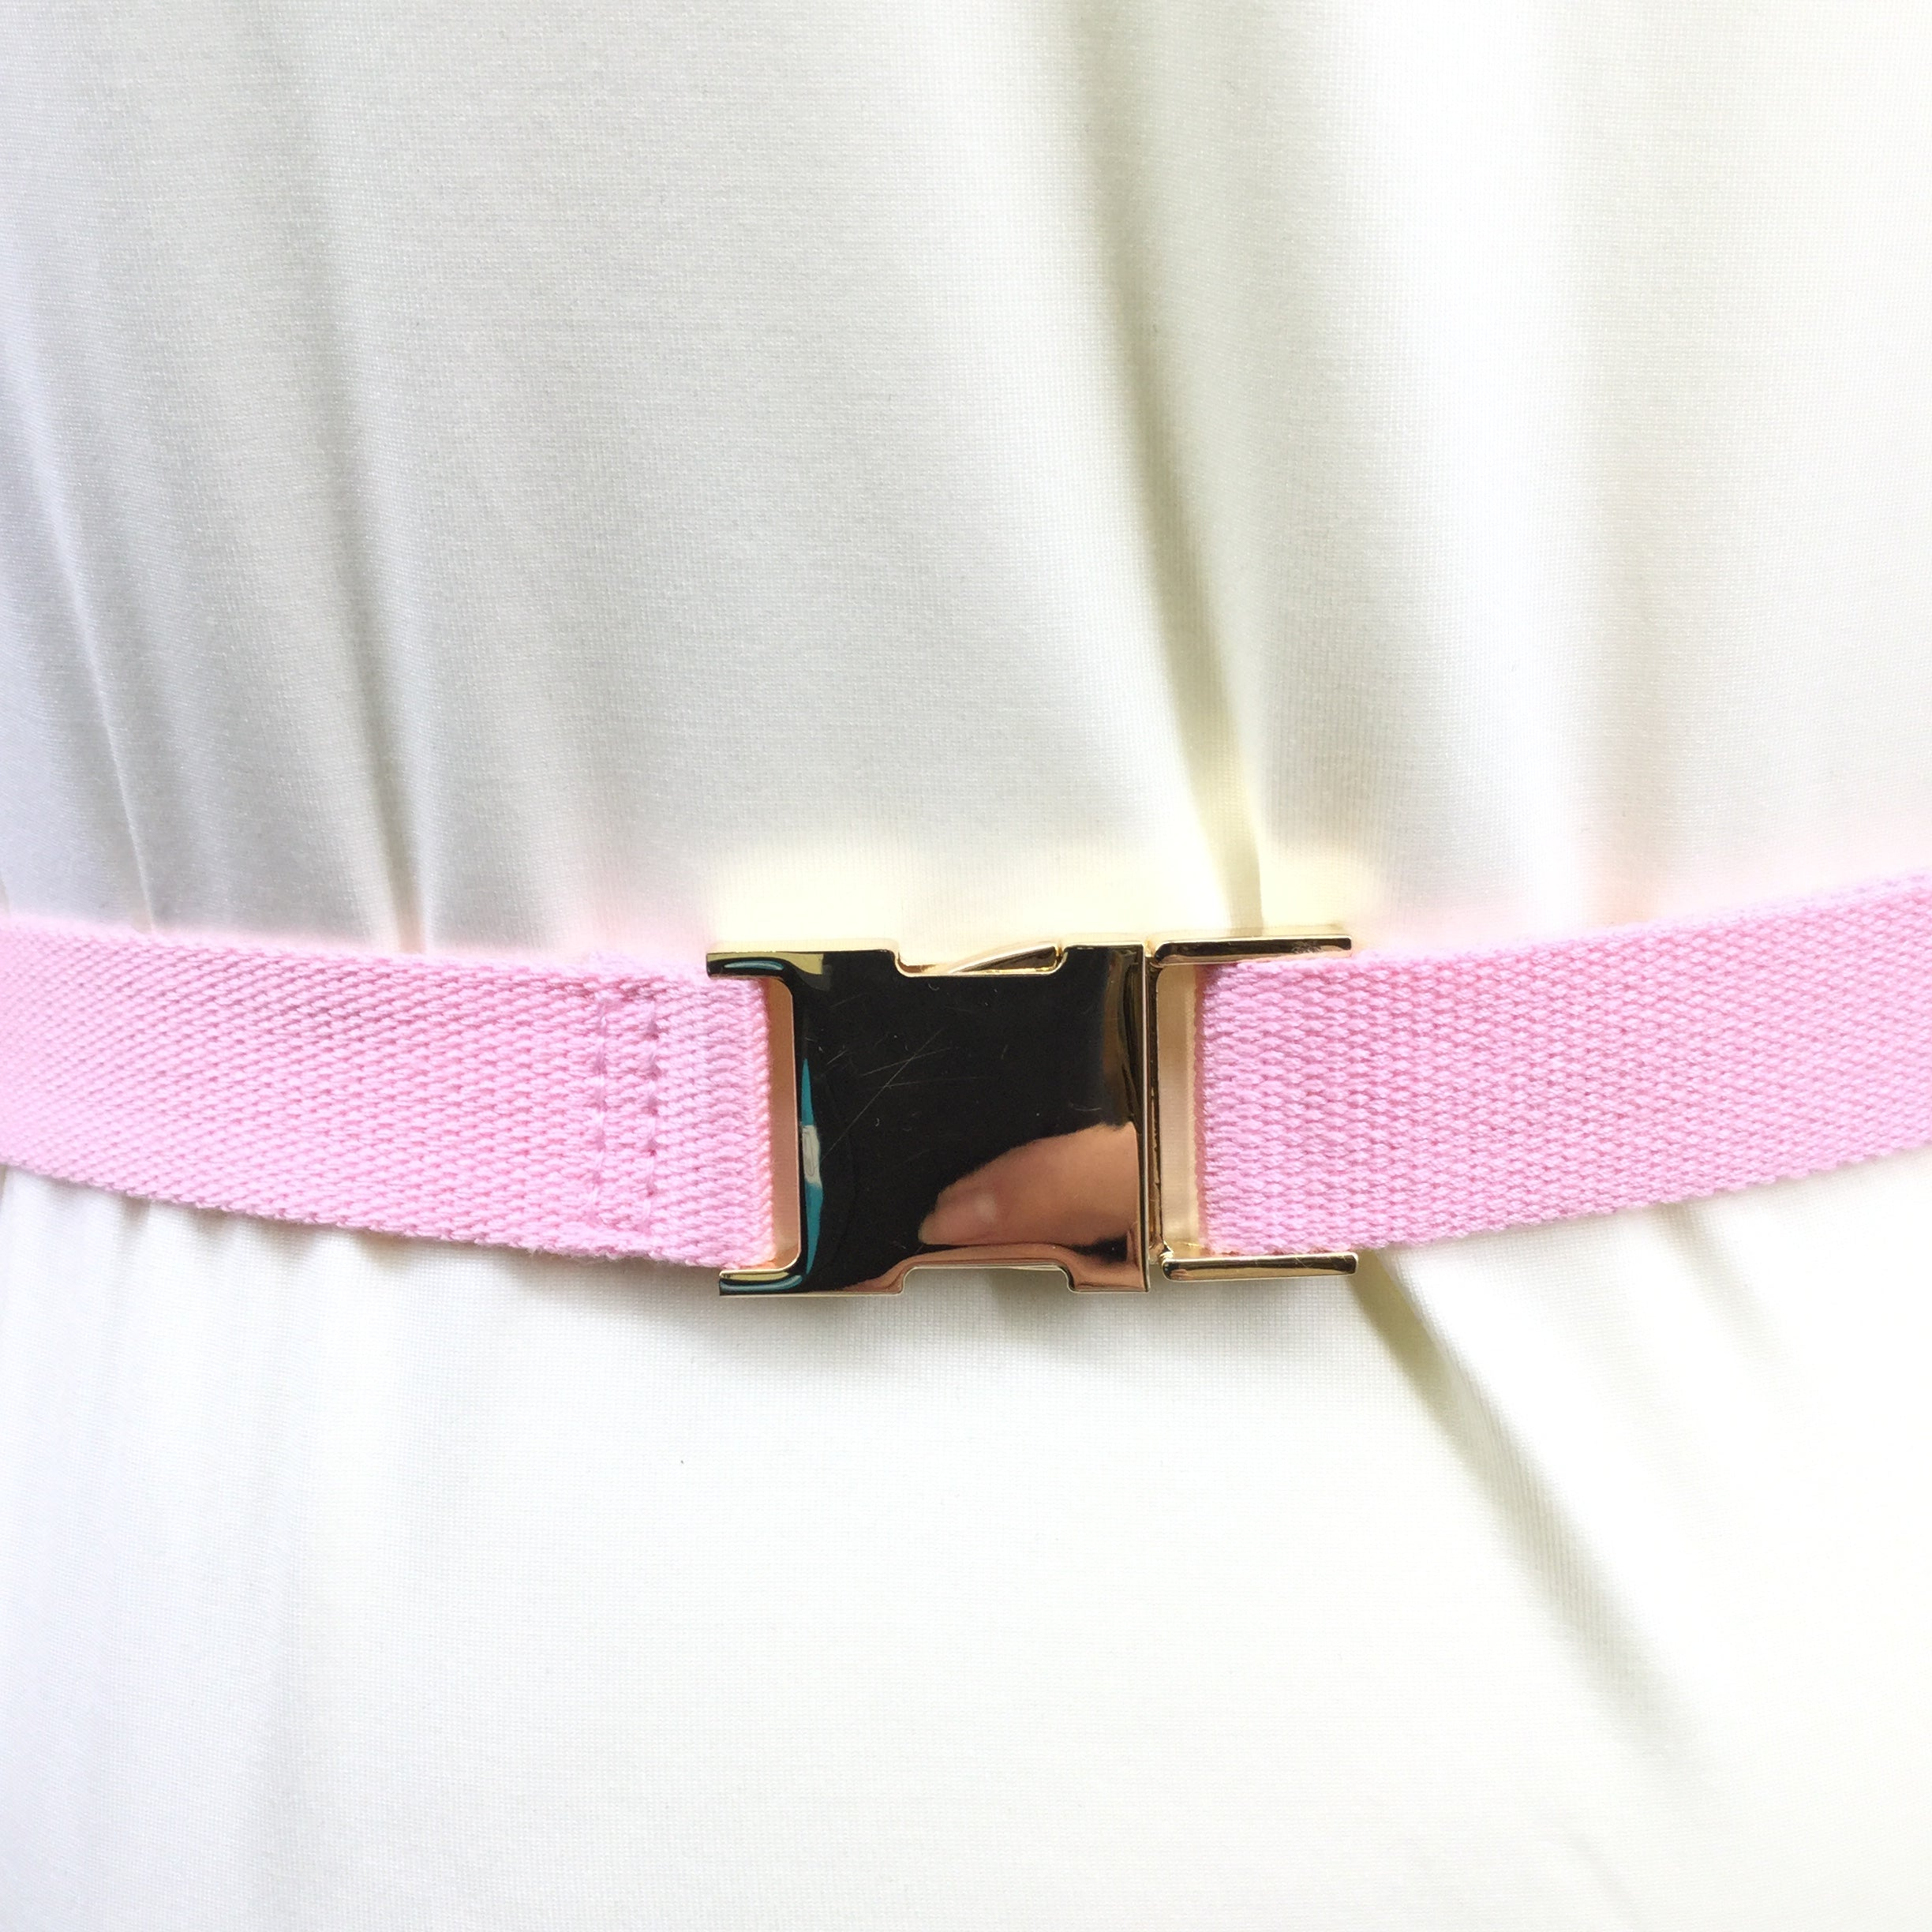 LILLY PULITZER FANNY PACK SIZE:SMALL - PINK AND GREEN LILLY PULITZER FANNY PACK. GOLD HARDWARE. ADJUSTABLE.